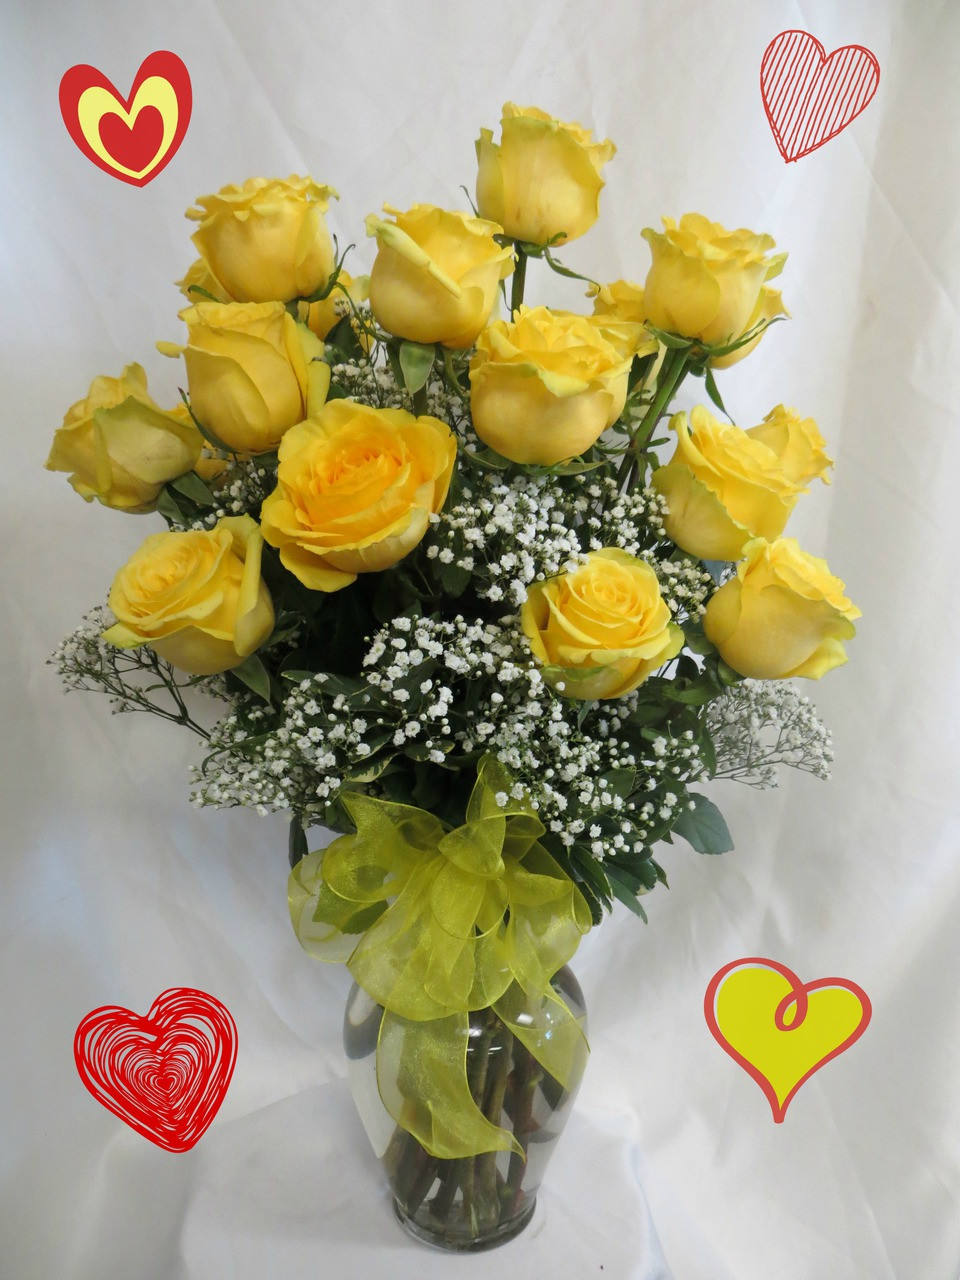 2 Dozen Yellow Roses Valentines Delivery Two Dz Roses